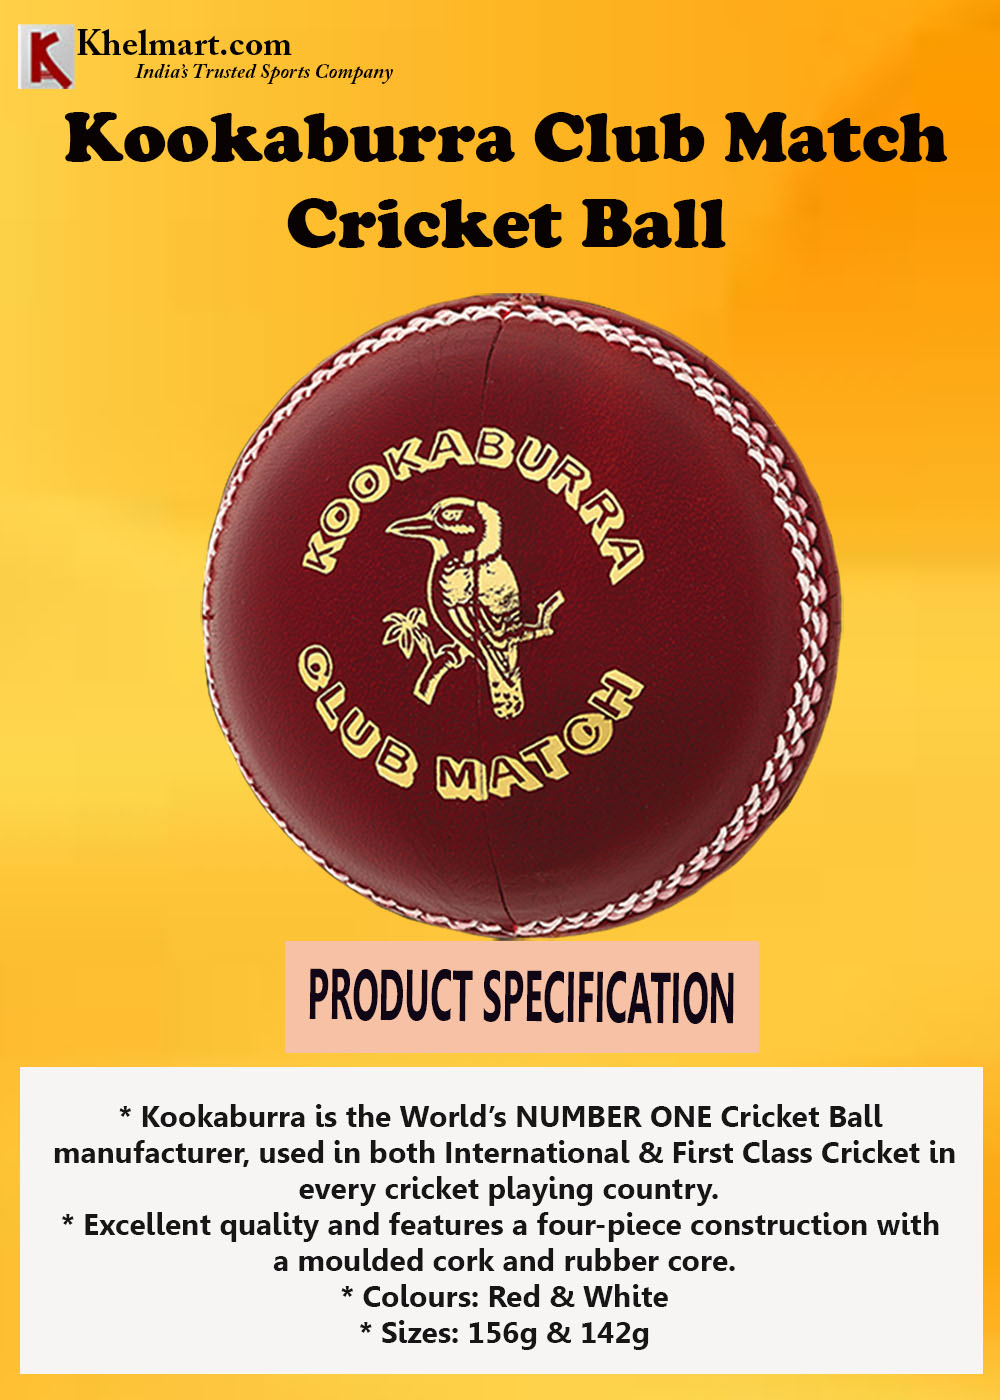 Kookaburra Club Match Cricket Ball